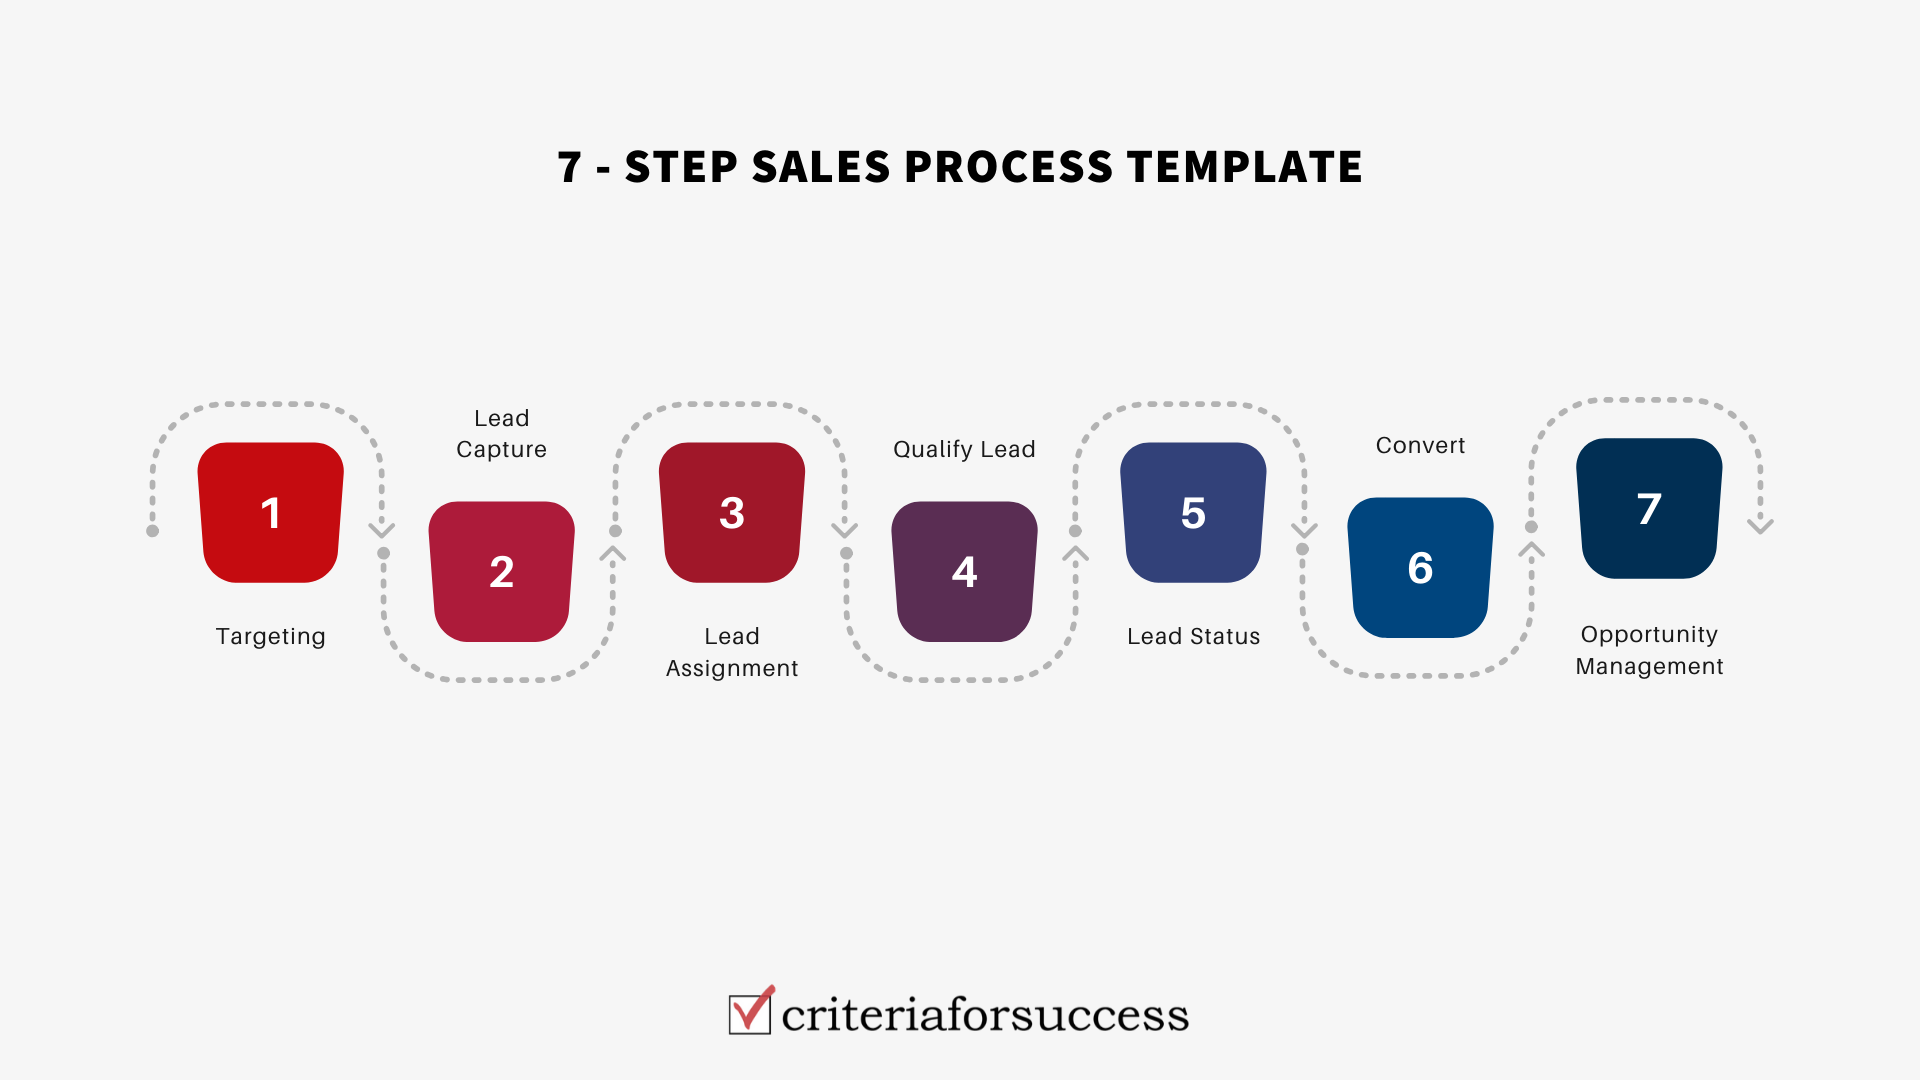 7 Step Sales Process Template